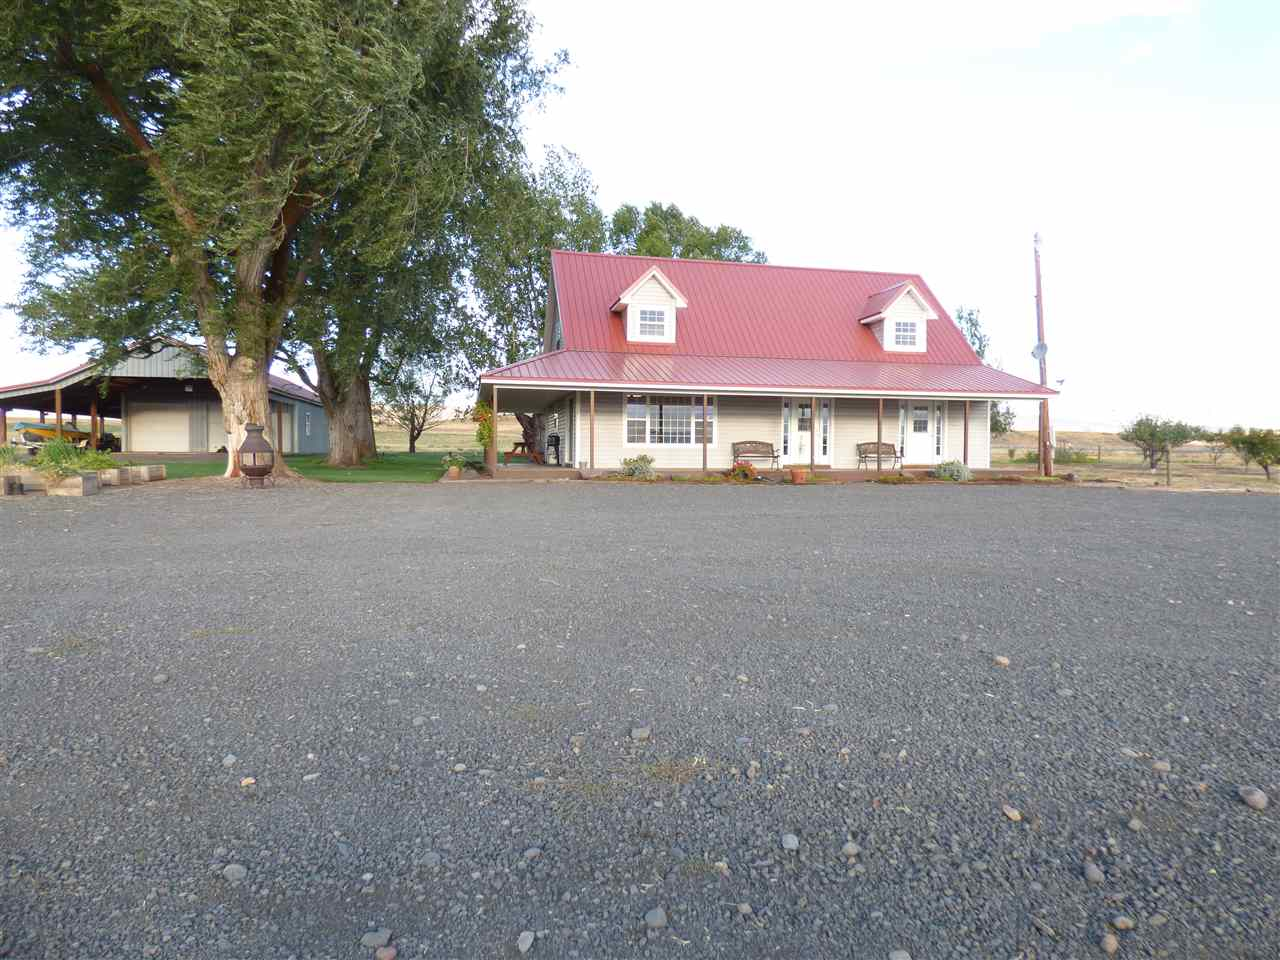 Single Family Home for Sale at 2340 Highway 95 2340 Highway 95 Midvale, Idaho 83645